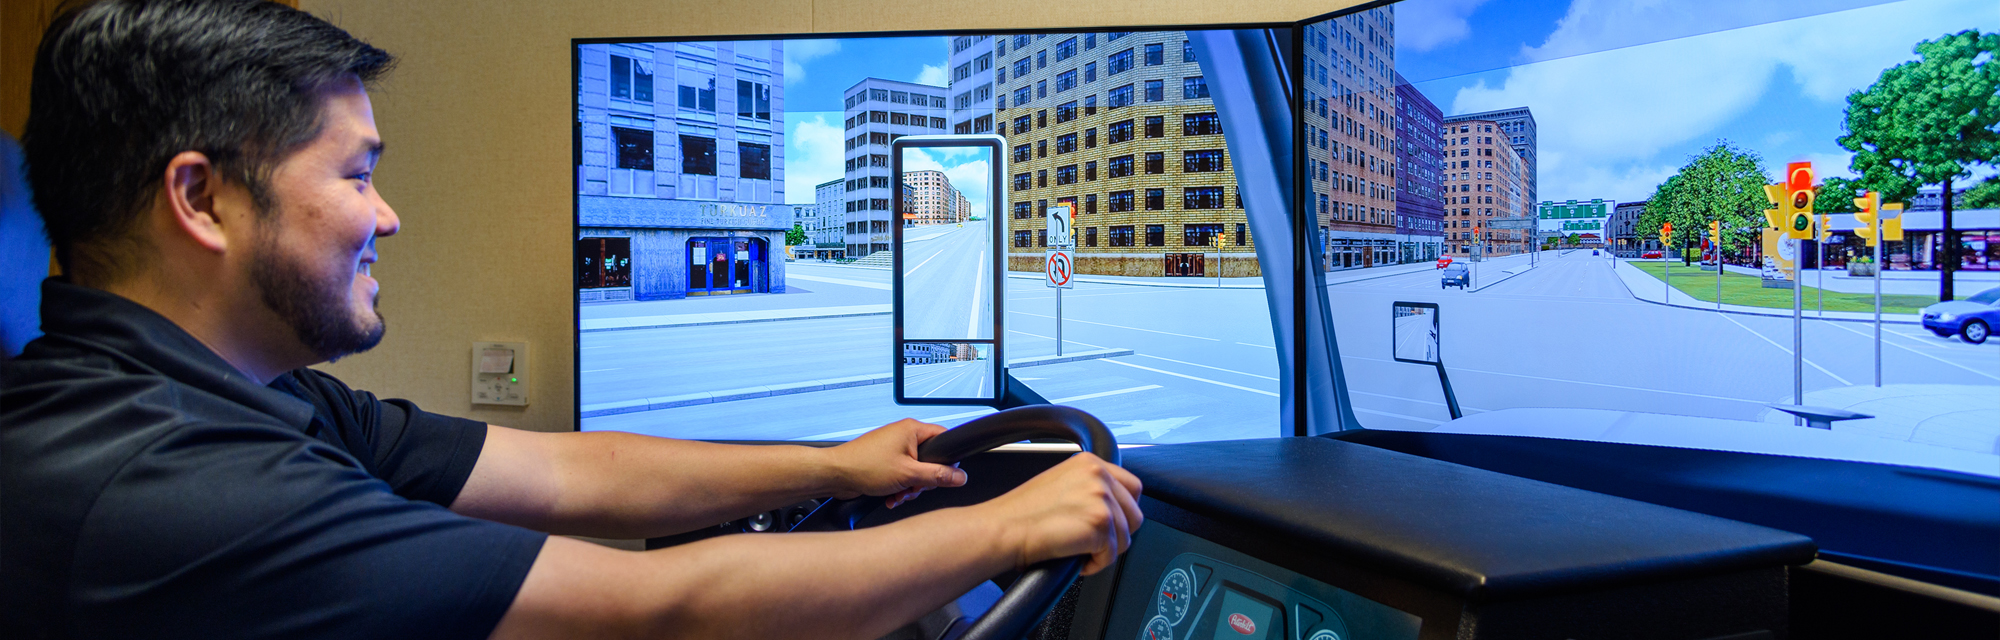 CDL Student Driving Simulator